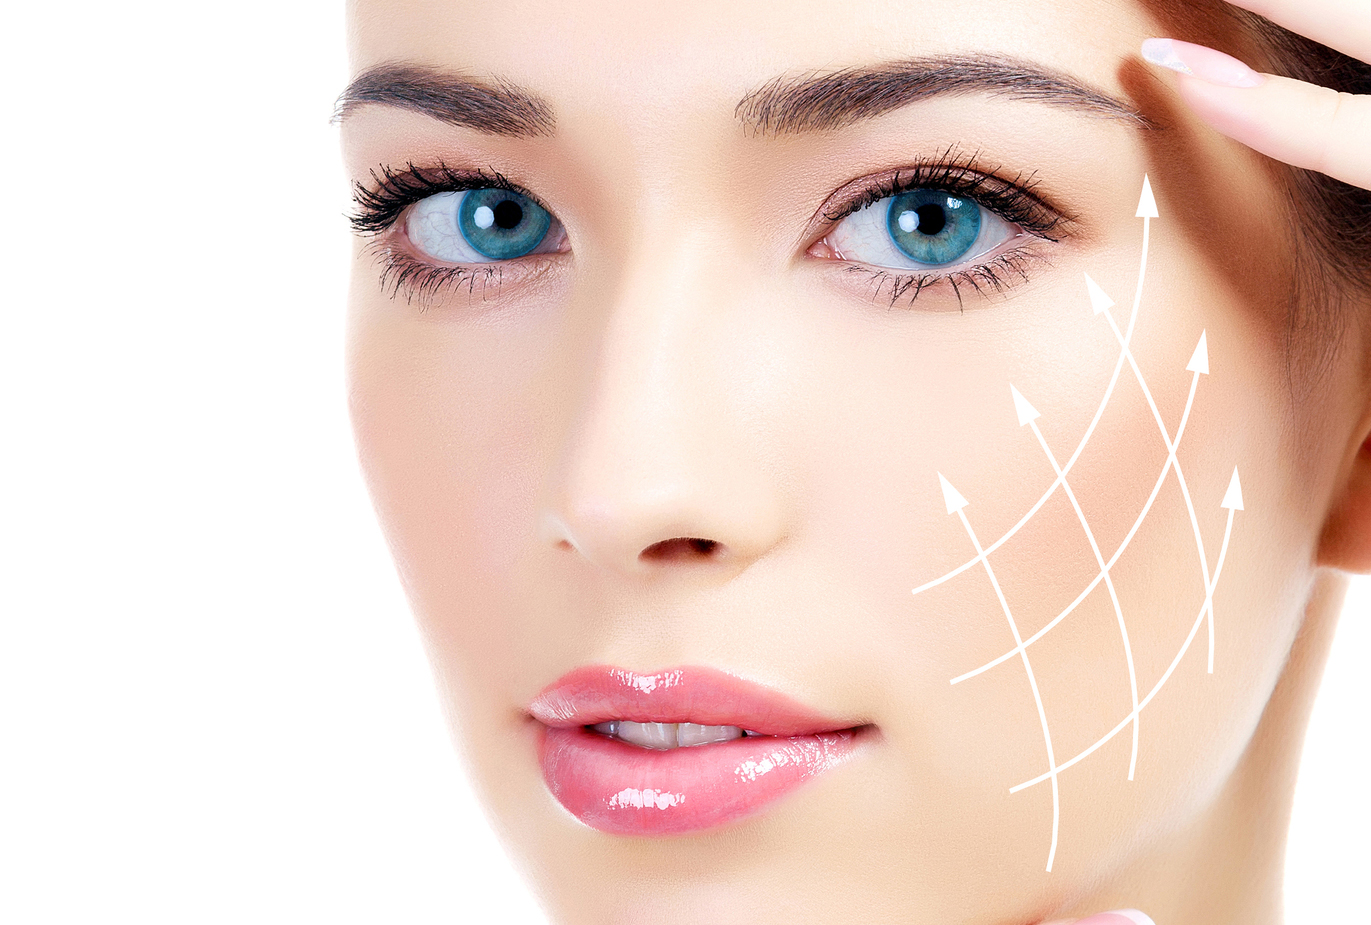 Non-Surgical-Facelift in Islamabad, Rawalpindi & Pakistan